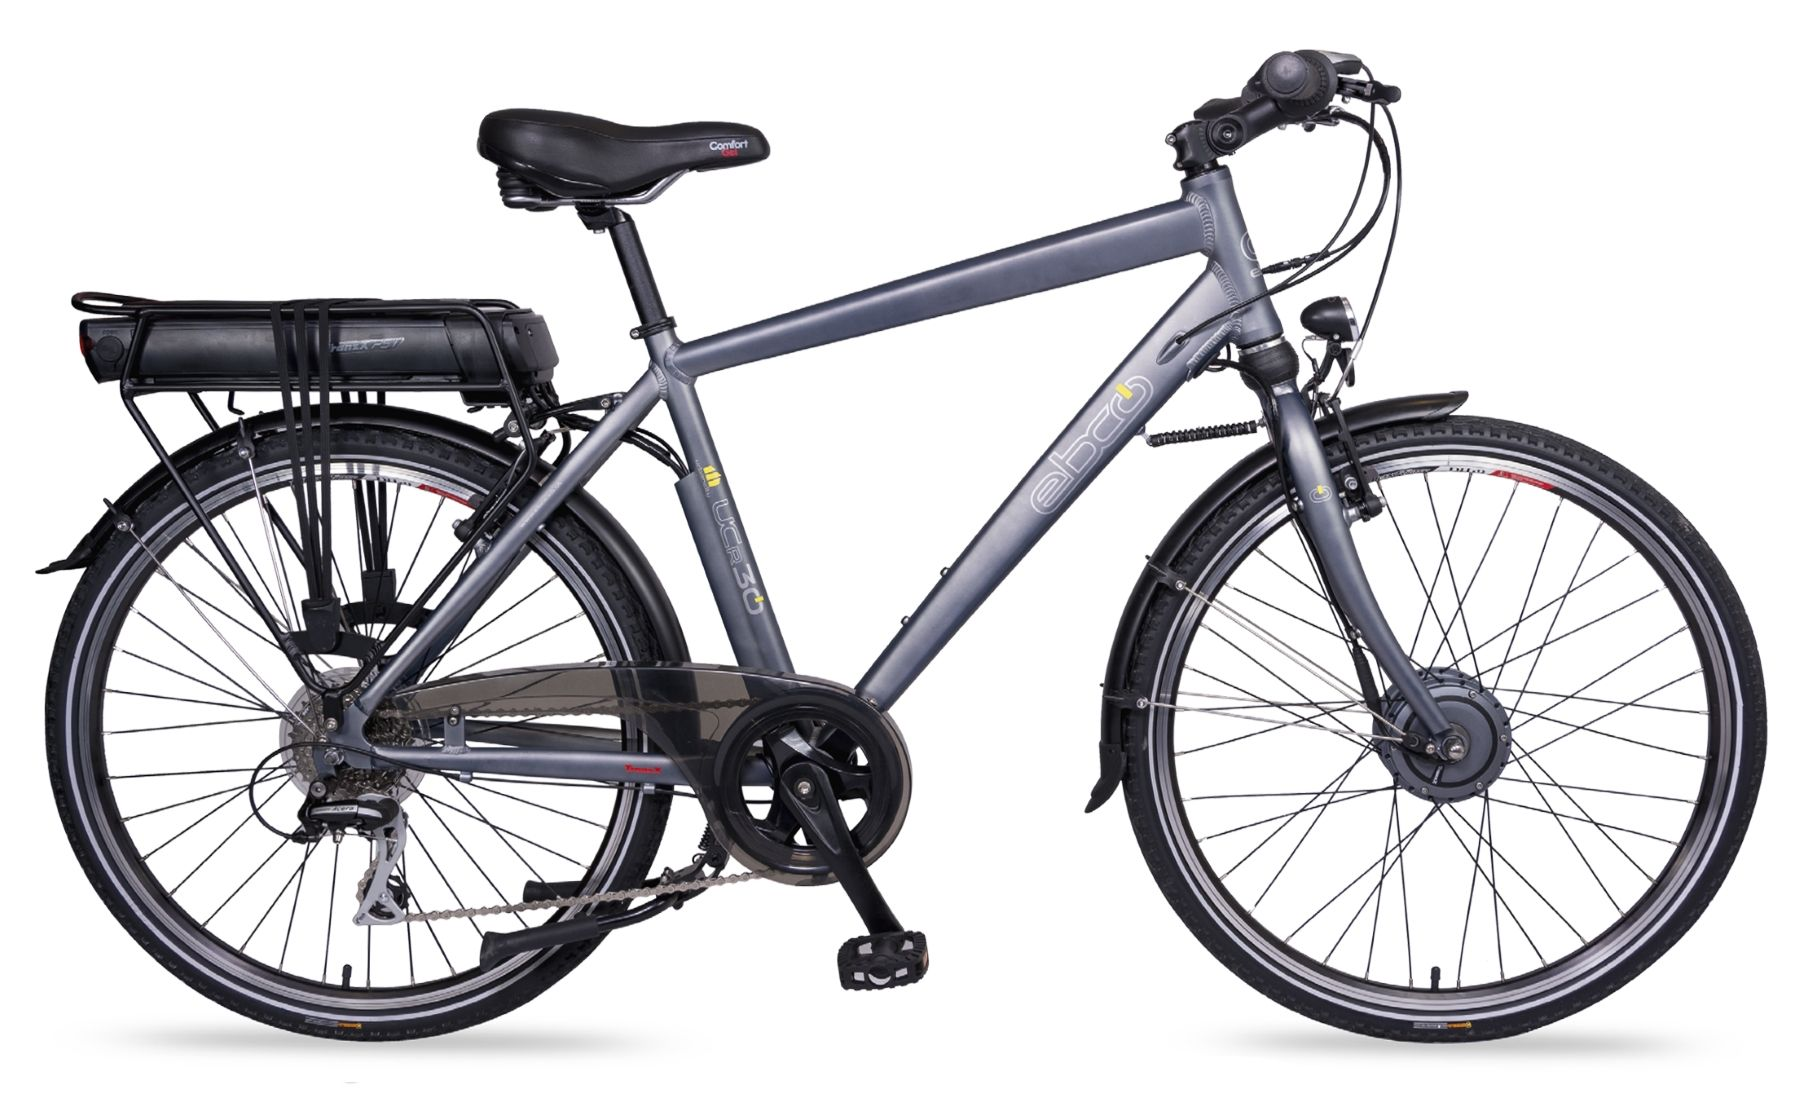 Ebco Ucr 30 Electric Bike